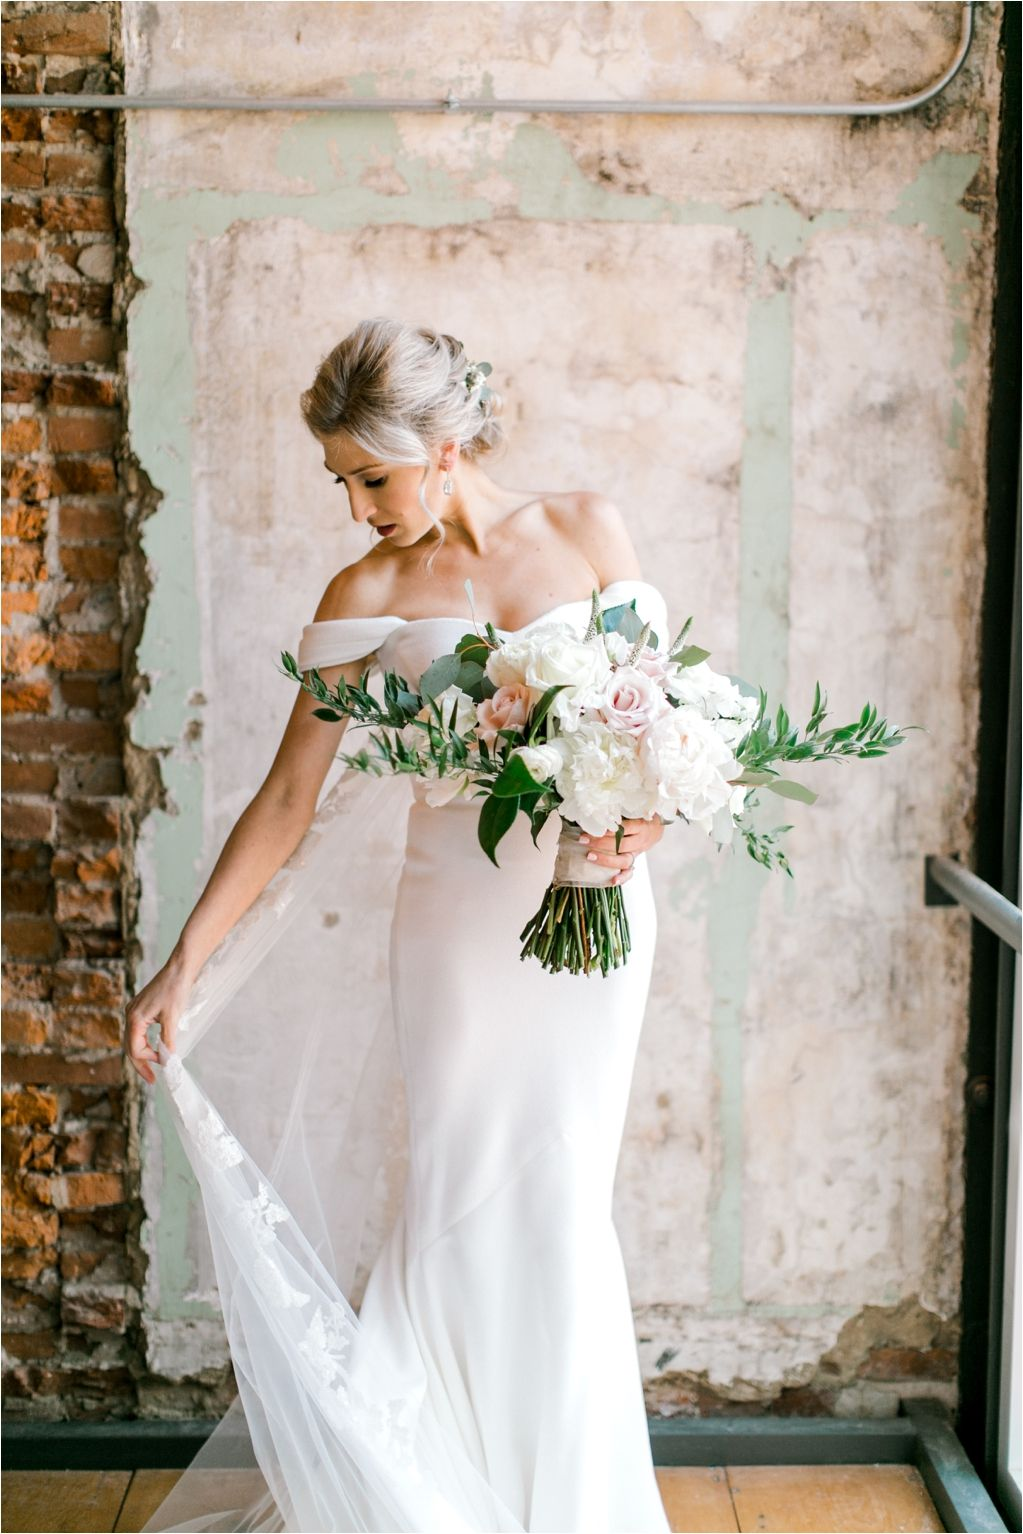 Wedding Reception Ceremony Wedding Venue Wedding Photography The Knot Wedding Inspiration Brid Wedding Dresses With Flowers Wedding Dresses Brick Wedding Venue